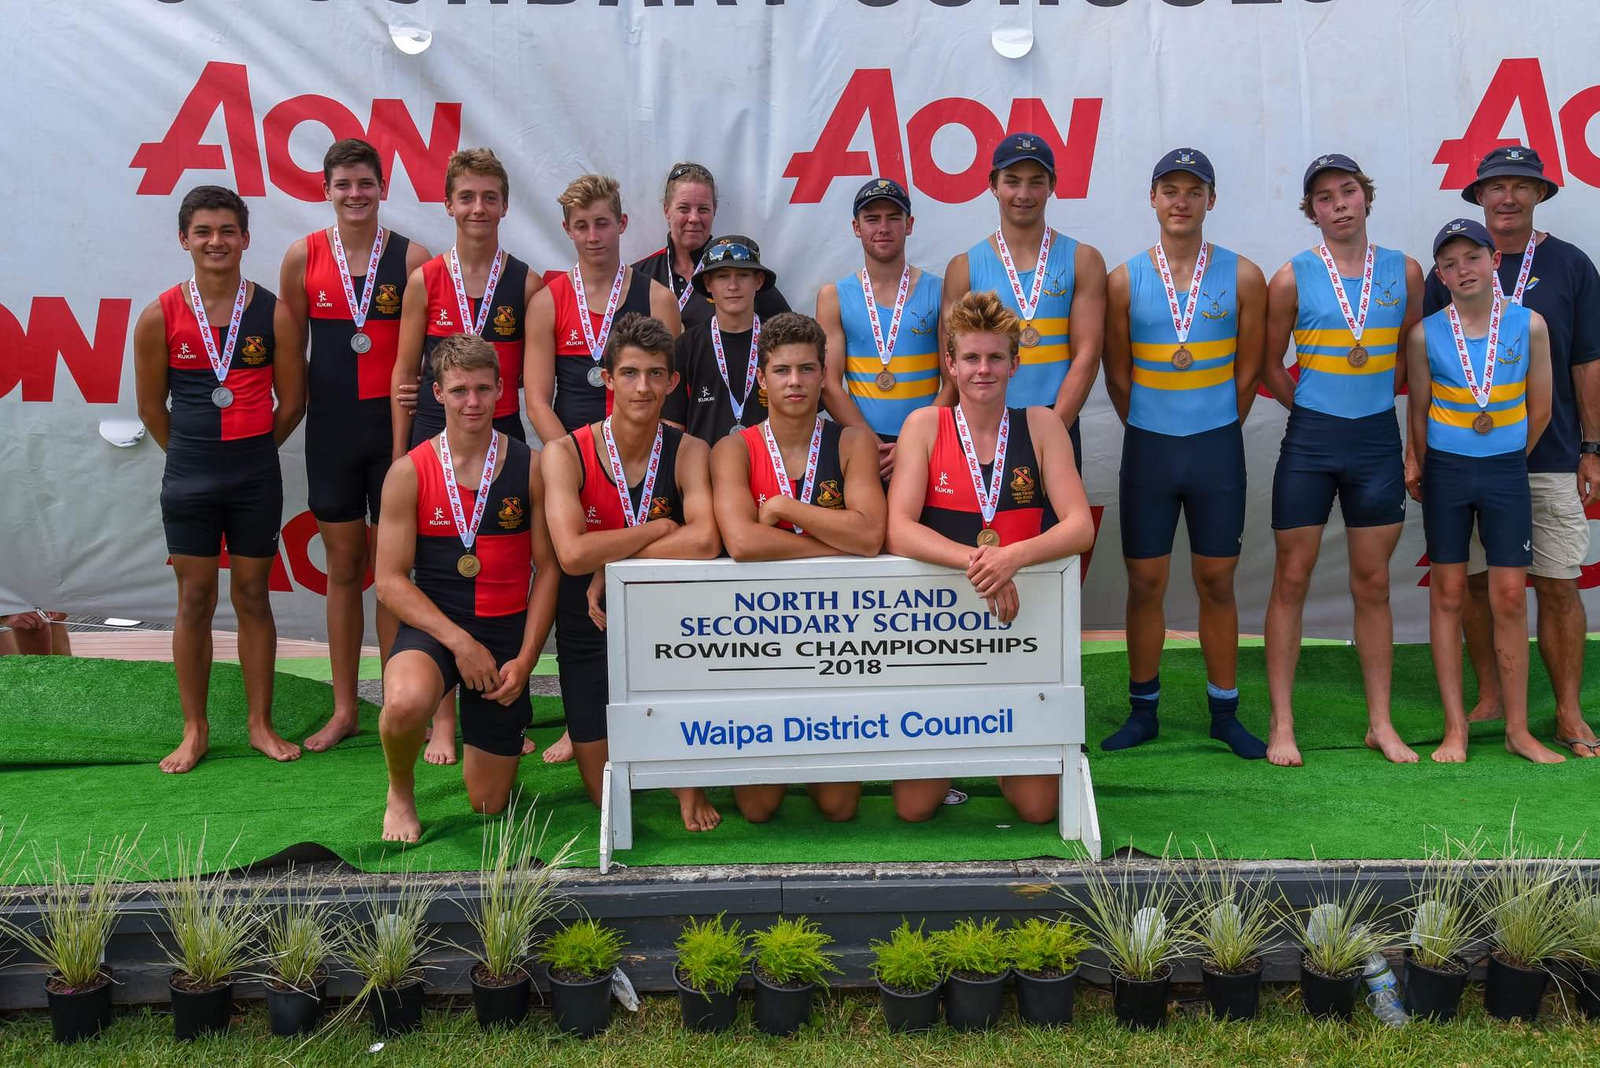 The Boys U15 Coxed Quad Sculls (as pictured above - Blake Jowsey, Ethan Welch, Callum Nicholson, Anthony Peters and Max Conder) won bronze medals. Coach Alex Brown.